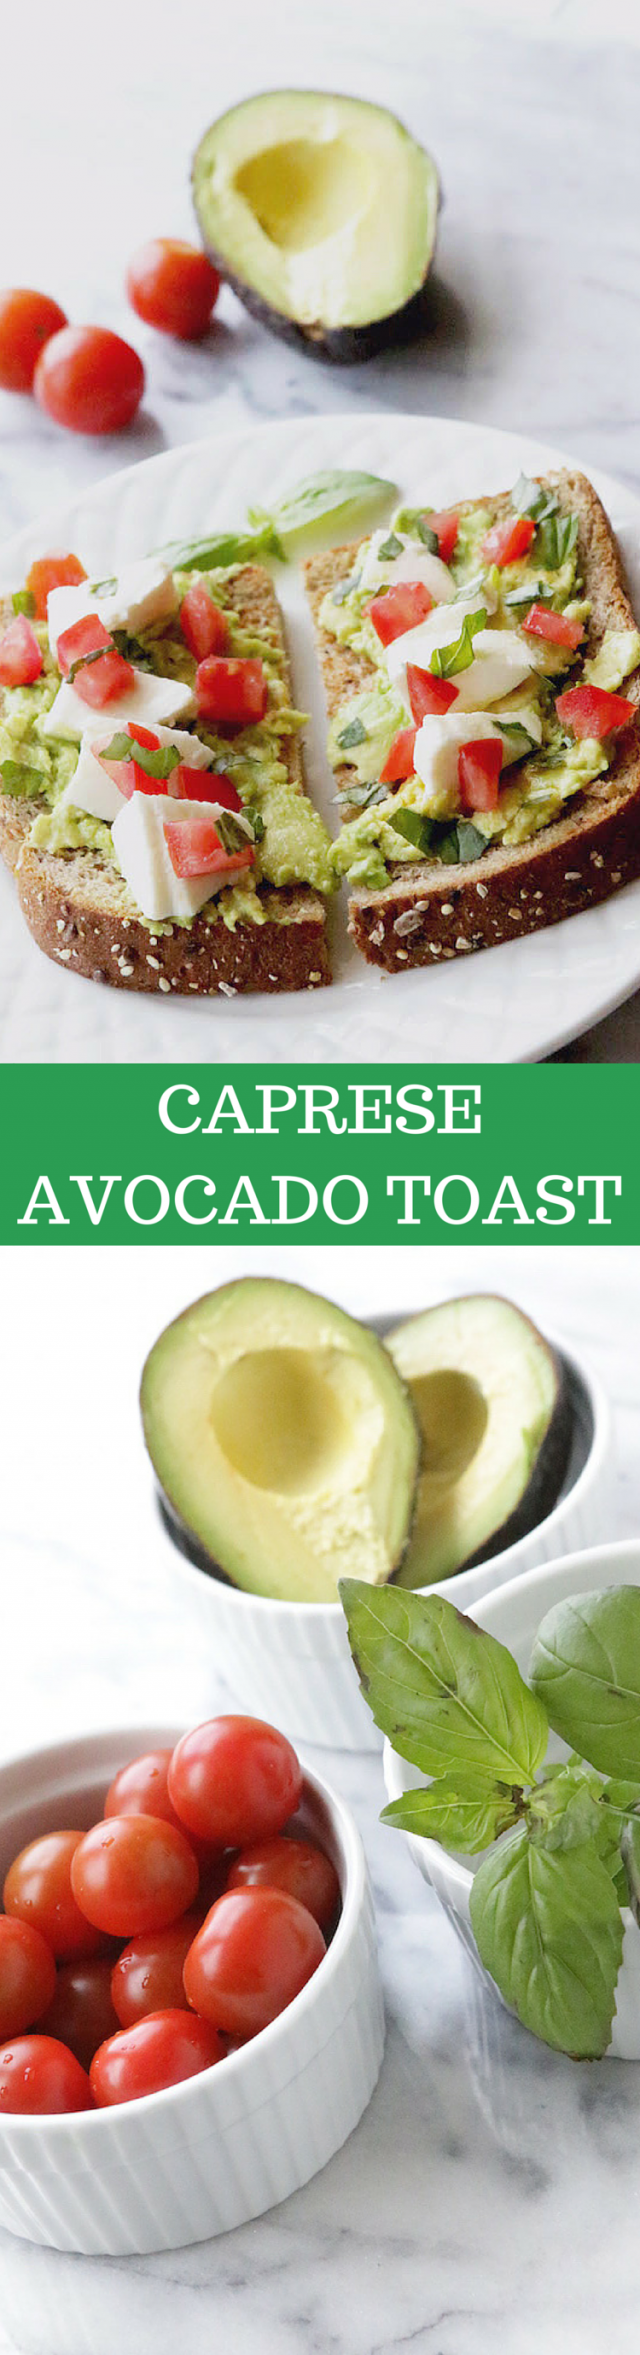 Caprese Avocado Toast Recipe